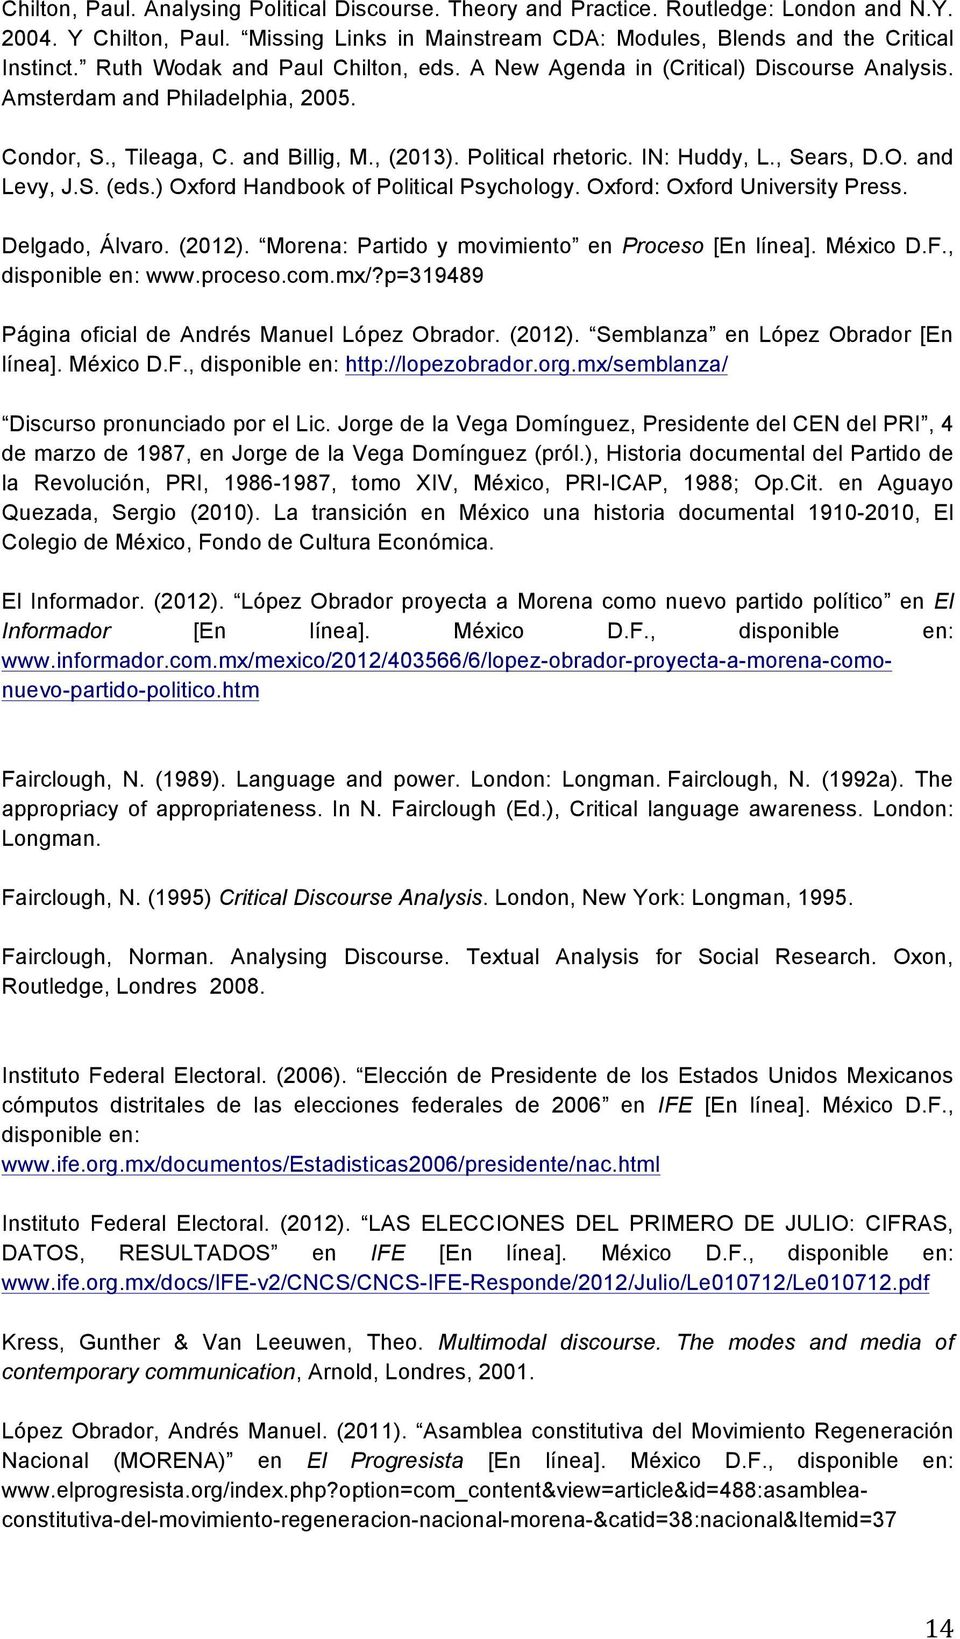 , Sears, D.O. and Levy, J.S. (eds.) Oxford Handbook of Political Psychology. Oxford: Oxford University Press. Delgado, Álvaro. (2012). Morena: Partido y movimiento en Proceso [En línea]. México D.F.